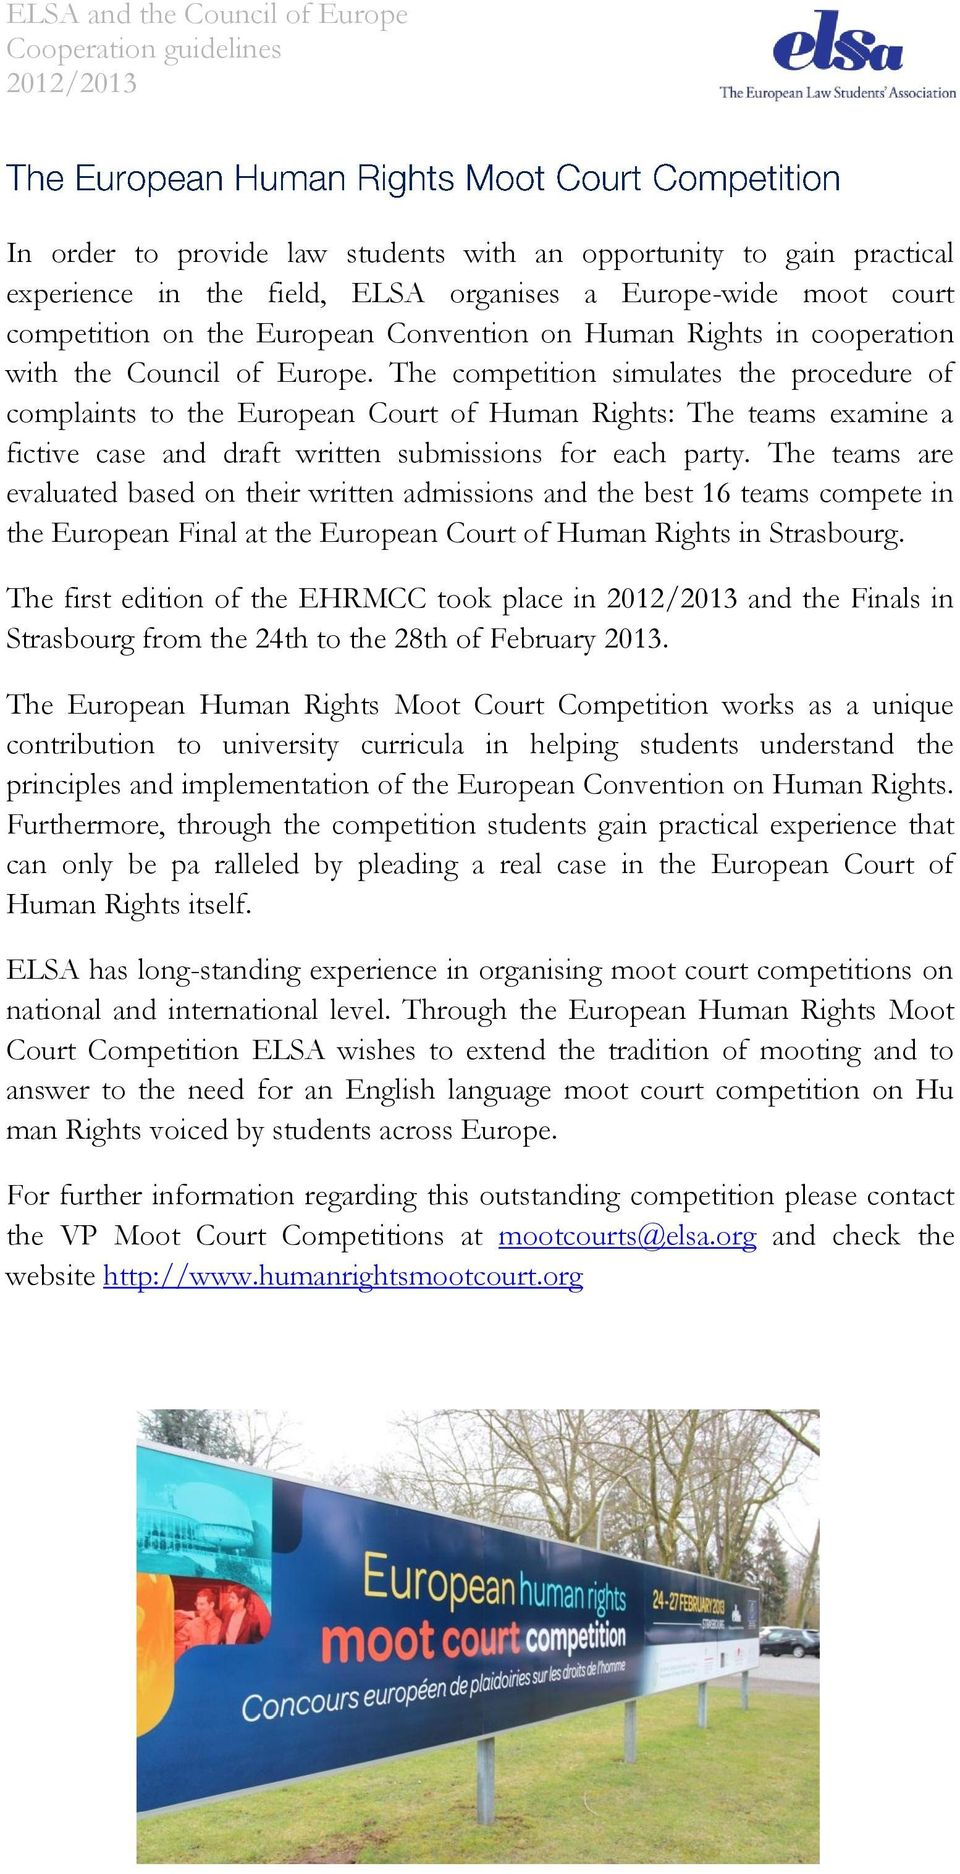 The competition simulates the procedure of complaints to the European Court of Human Rights: The teams examine a fictive case and draft written submissions for each party.